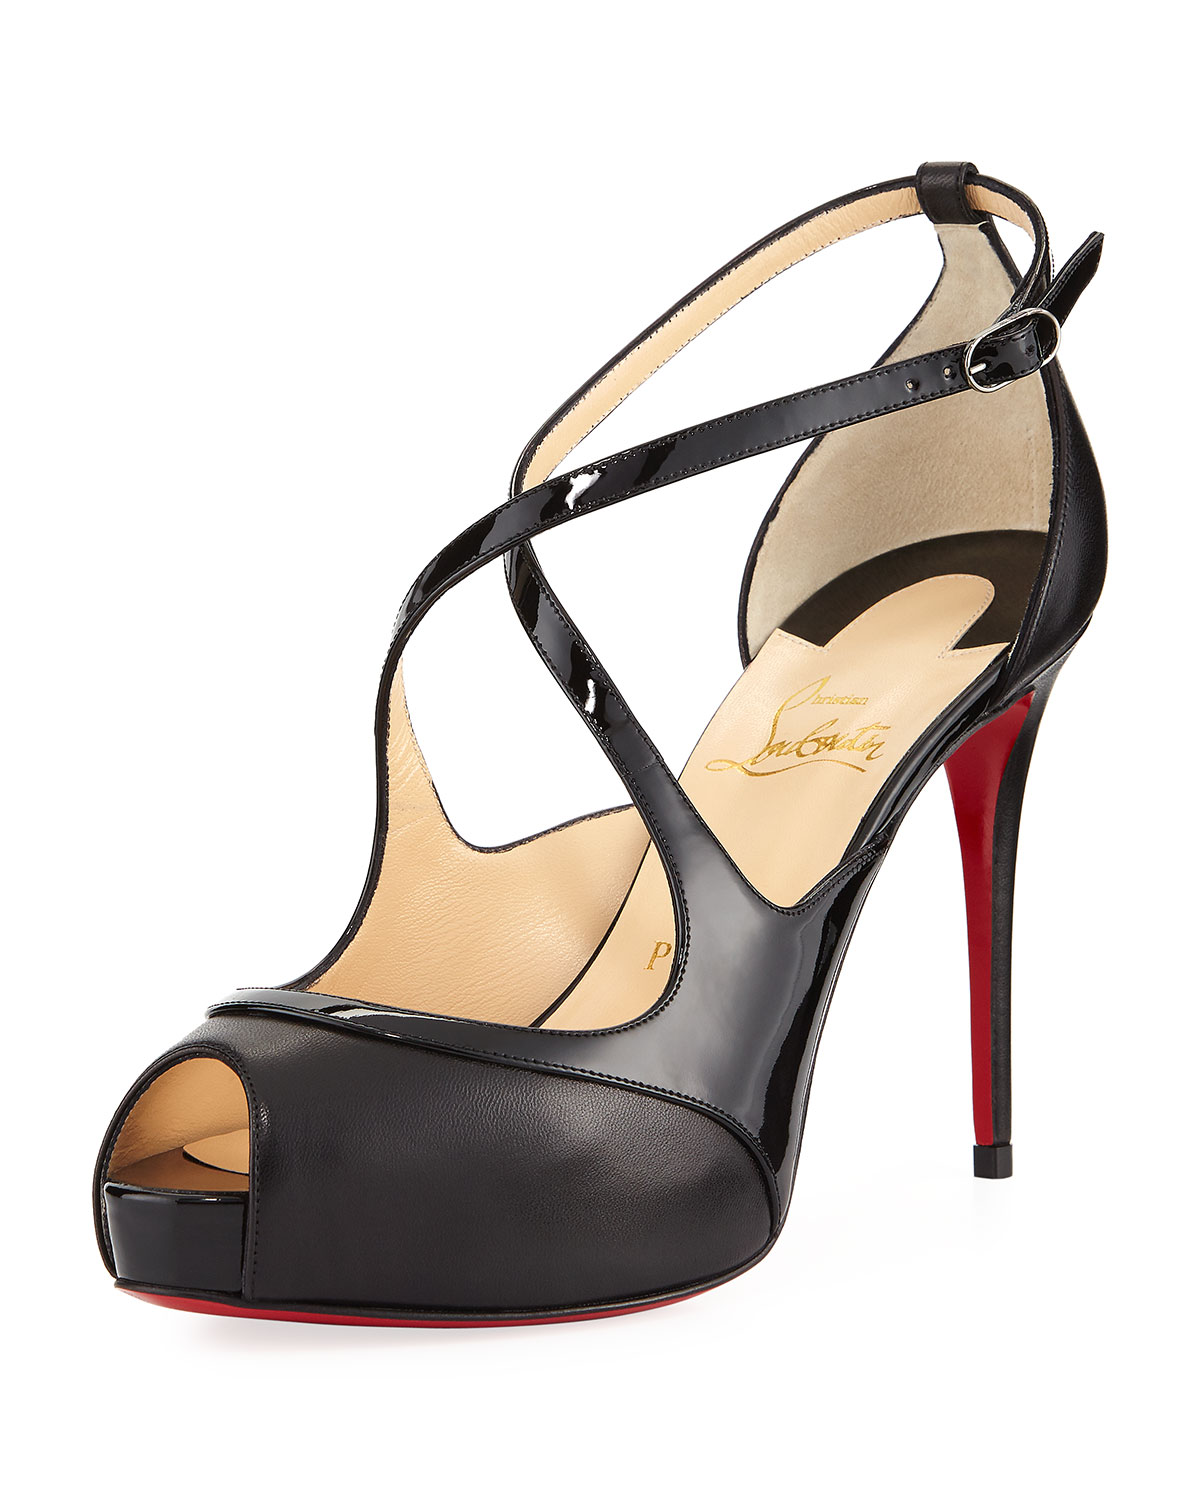 863b891d4e4 Christian Louboutin Mirabella Strappy 100mm Red Sole Pumps